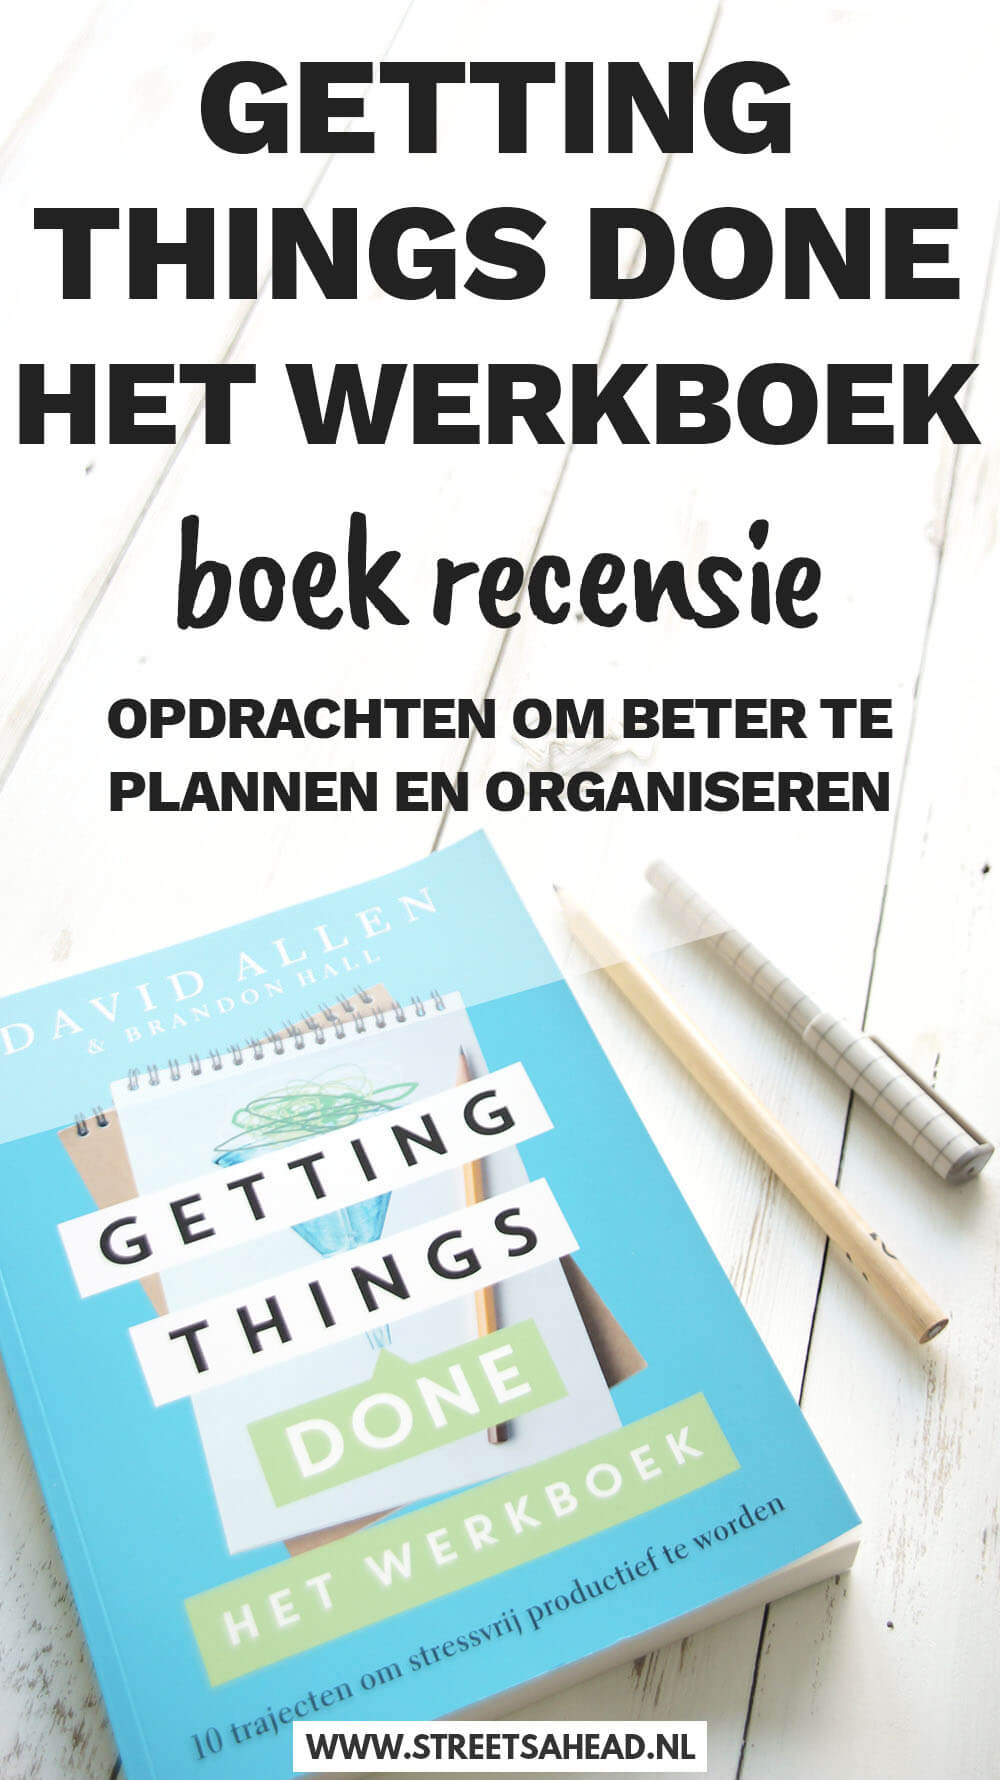 Getting Things Done Werkboek (David Allen): een recensie